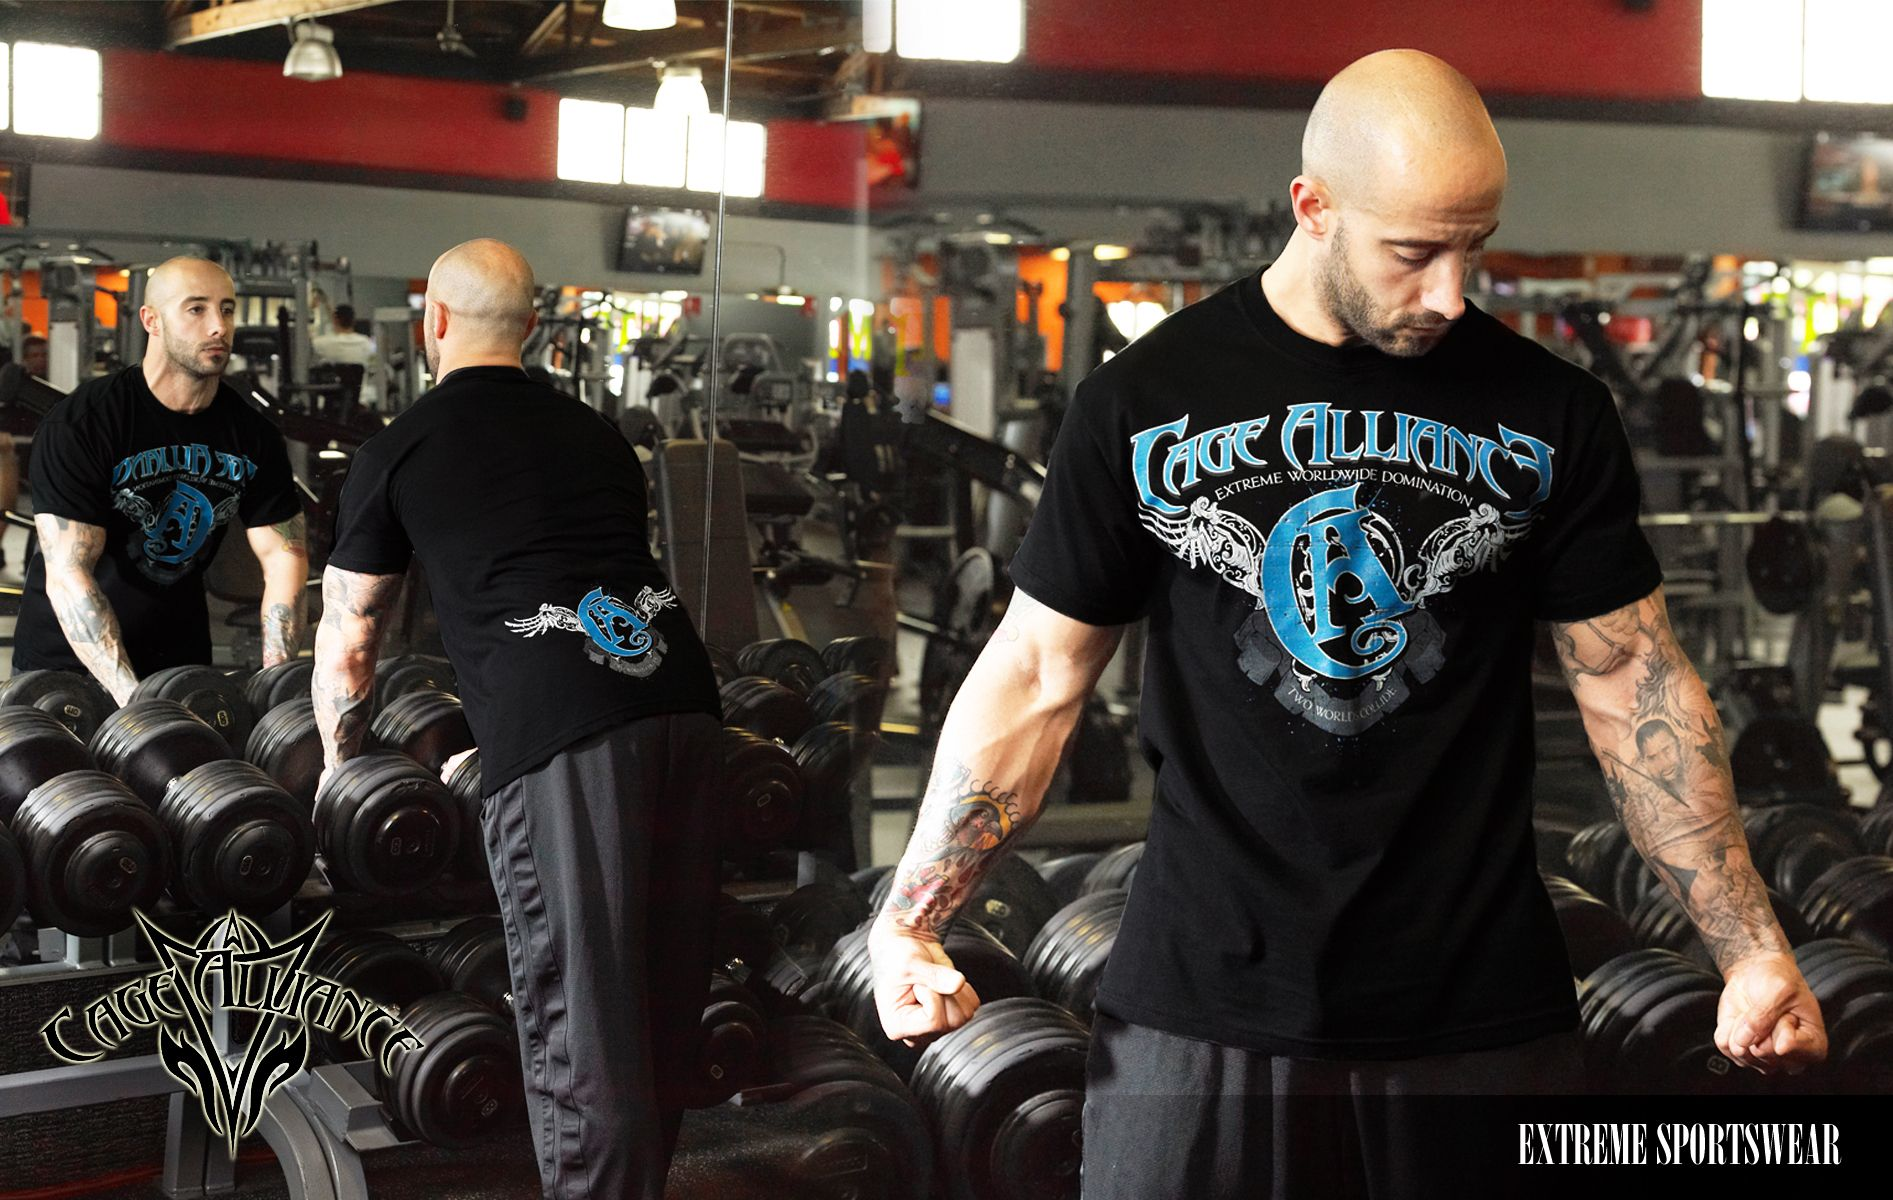 """Cage Alliance clothing represents Extreme Sports Wear.  Check out the """"Wings of Glory"""" Tshirt for men  & women .Now available online at www.cagealliance.com"""